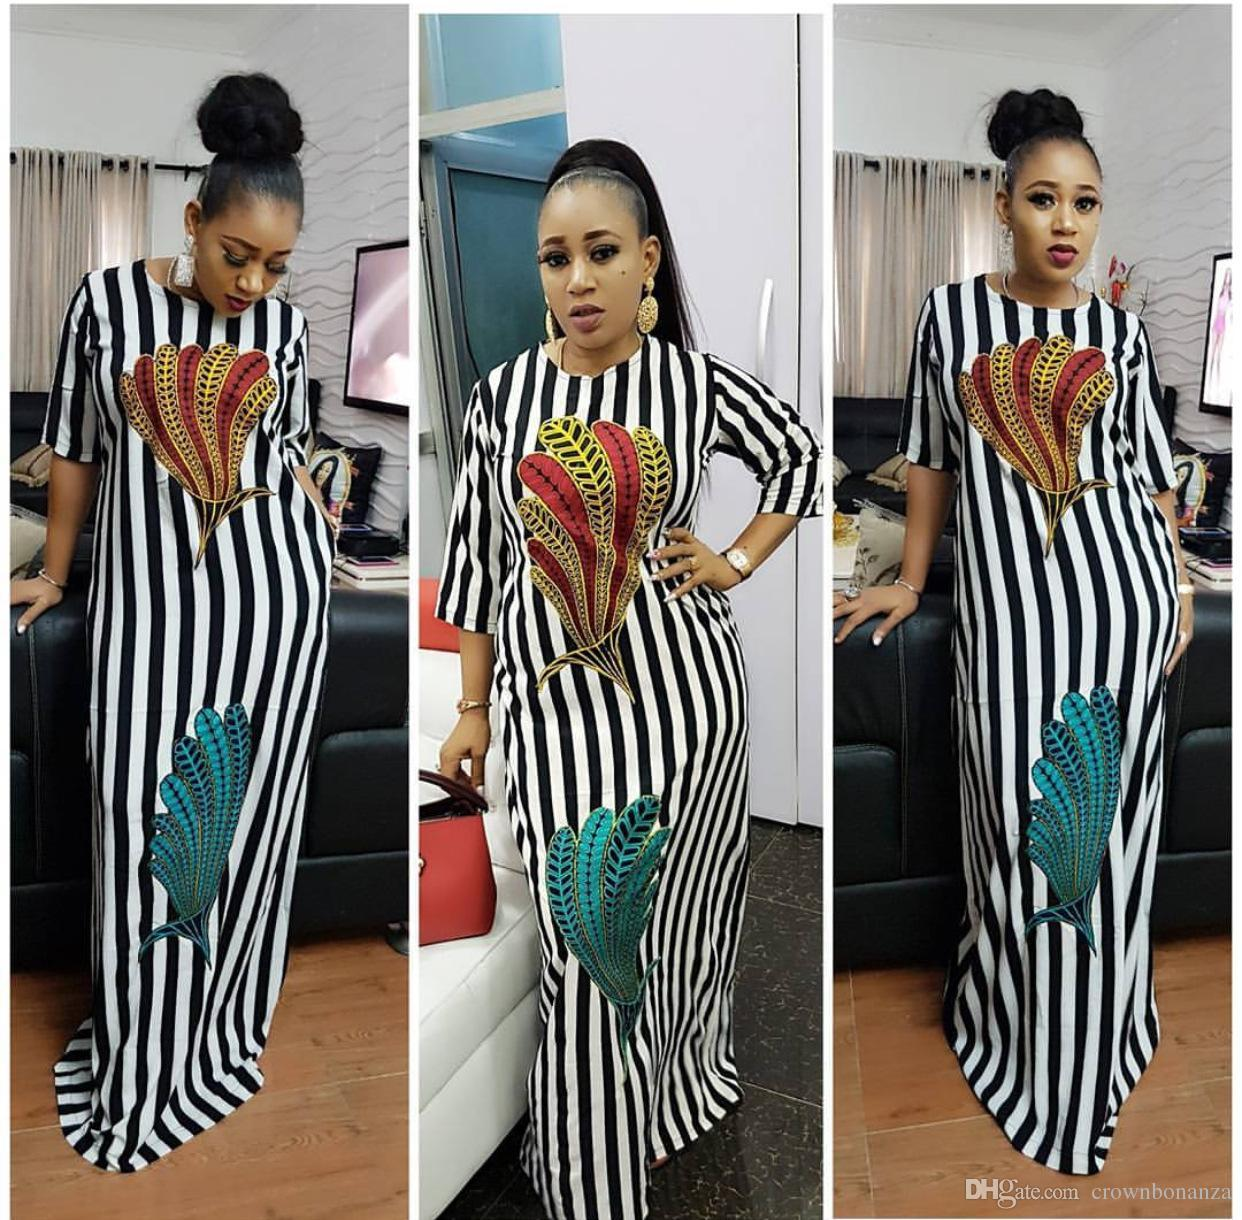 c33677c2ad 2018 Fashion Women Black and white stripes maxi dress Design Traditional  African Clothing Print Dashiki Nice Neck African Dresses for Women